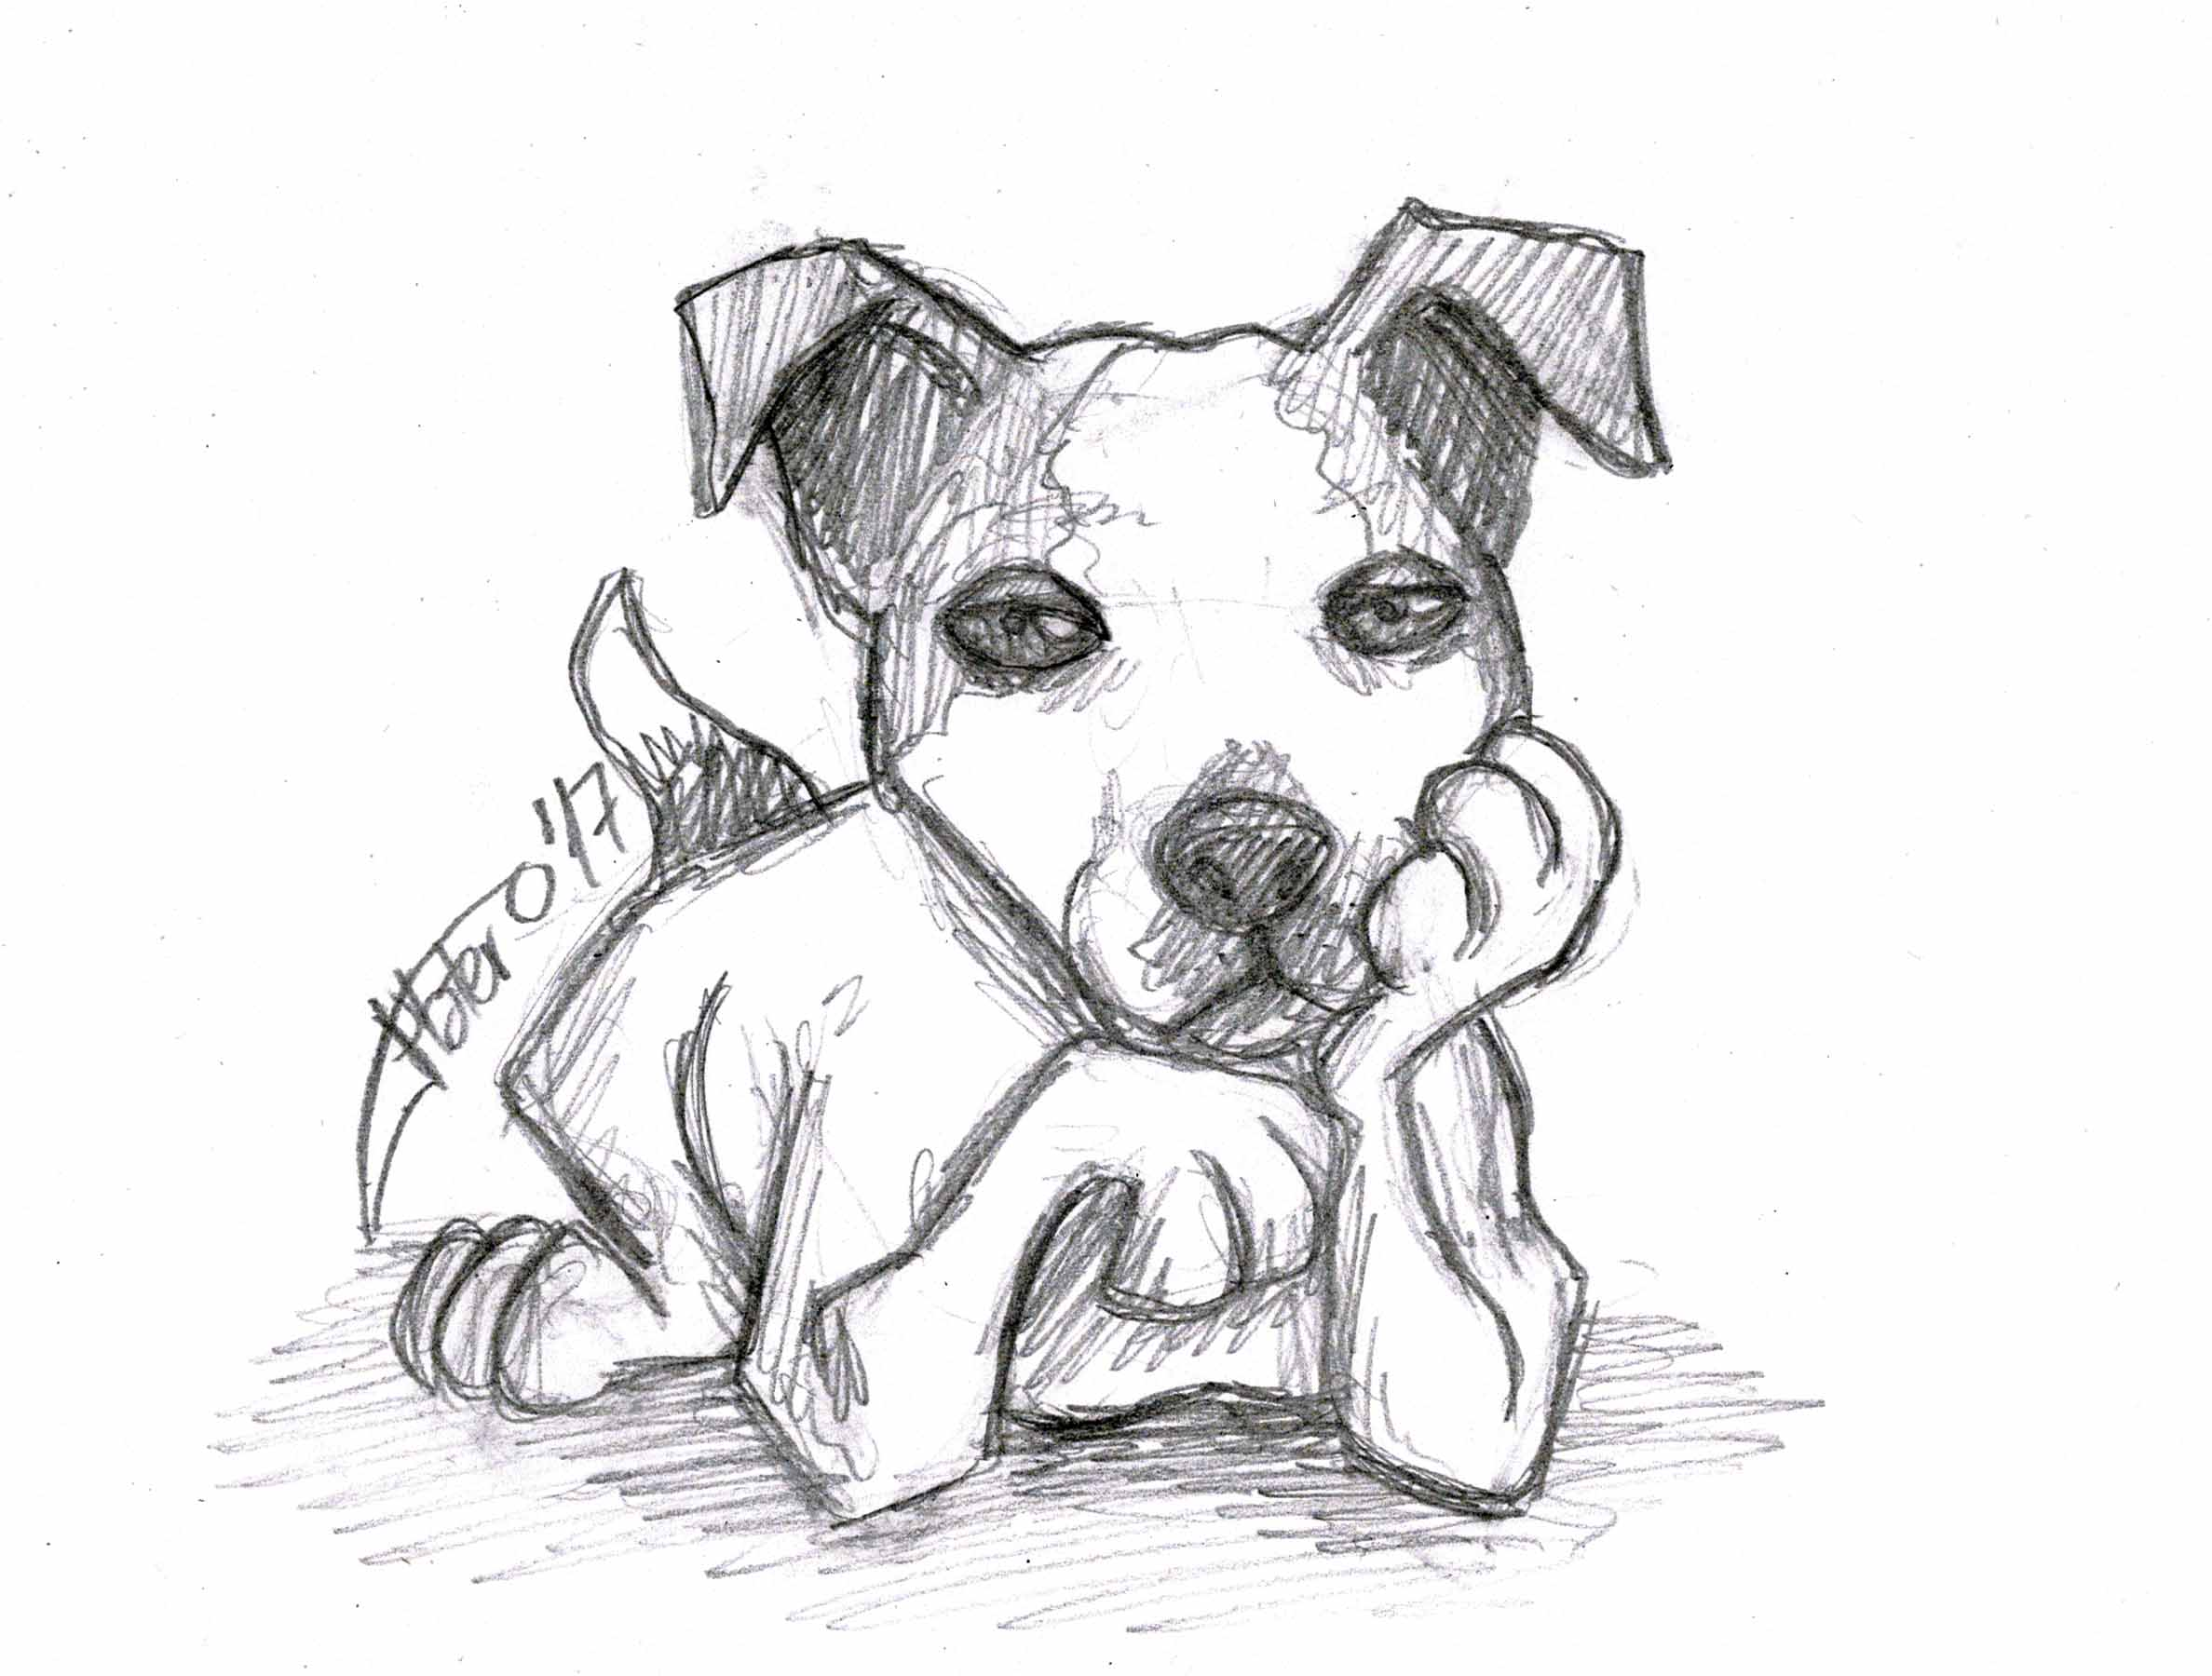 jack_russell_perro_dog_sketch_caricature_jose_luis_platero